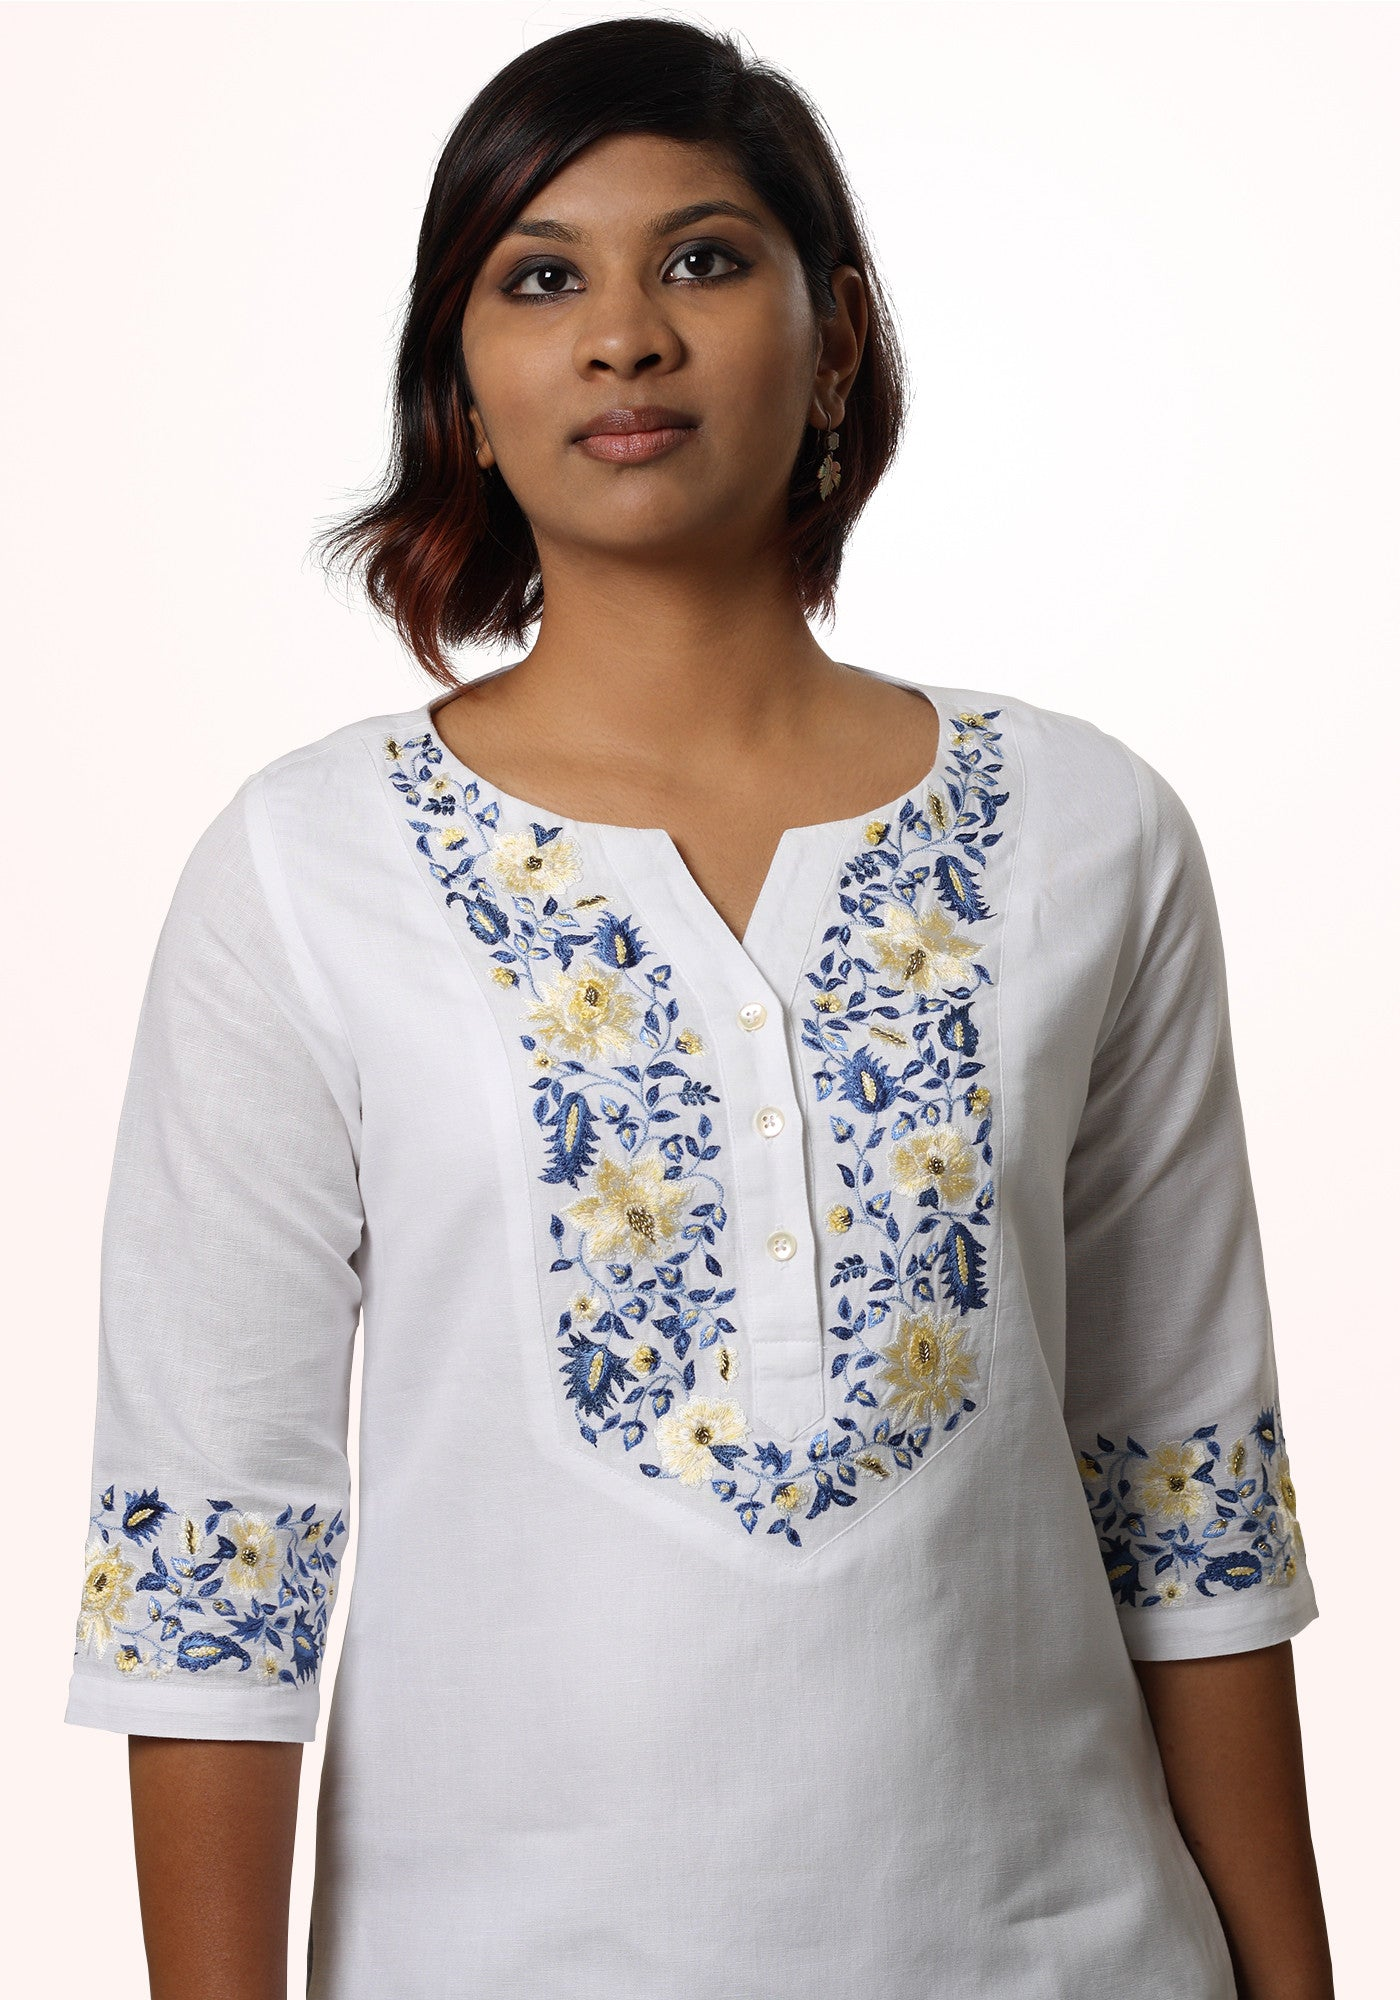 Embroidered White Linen Top - MINC ecofashion